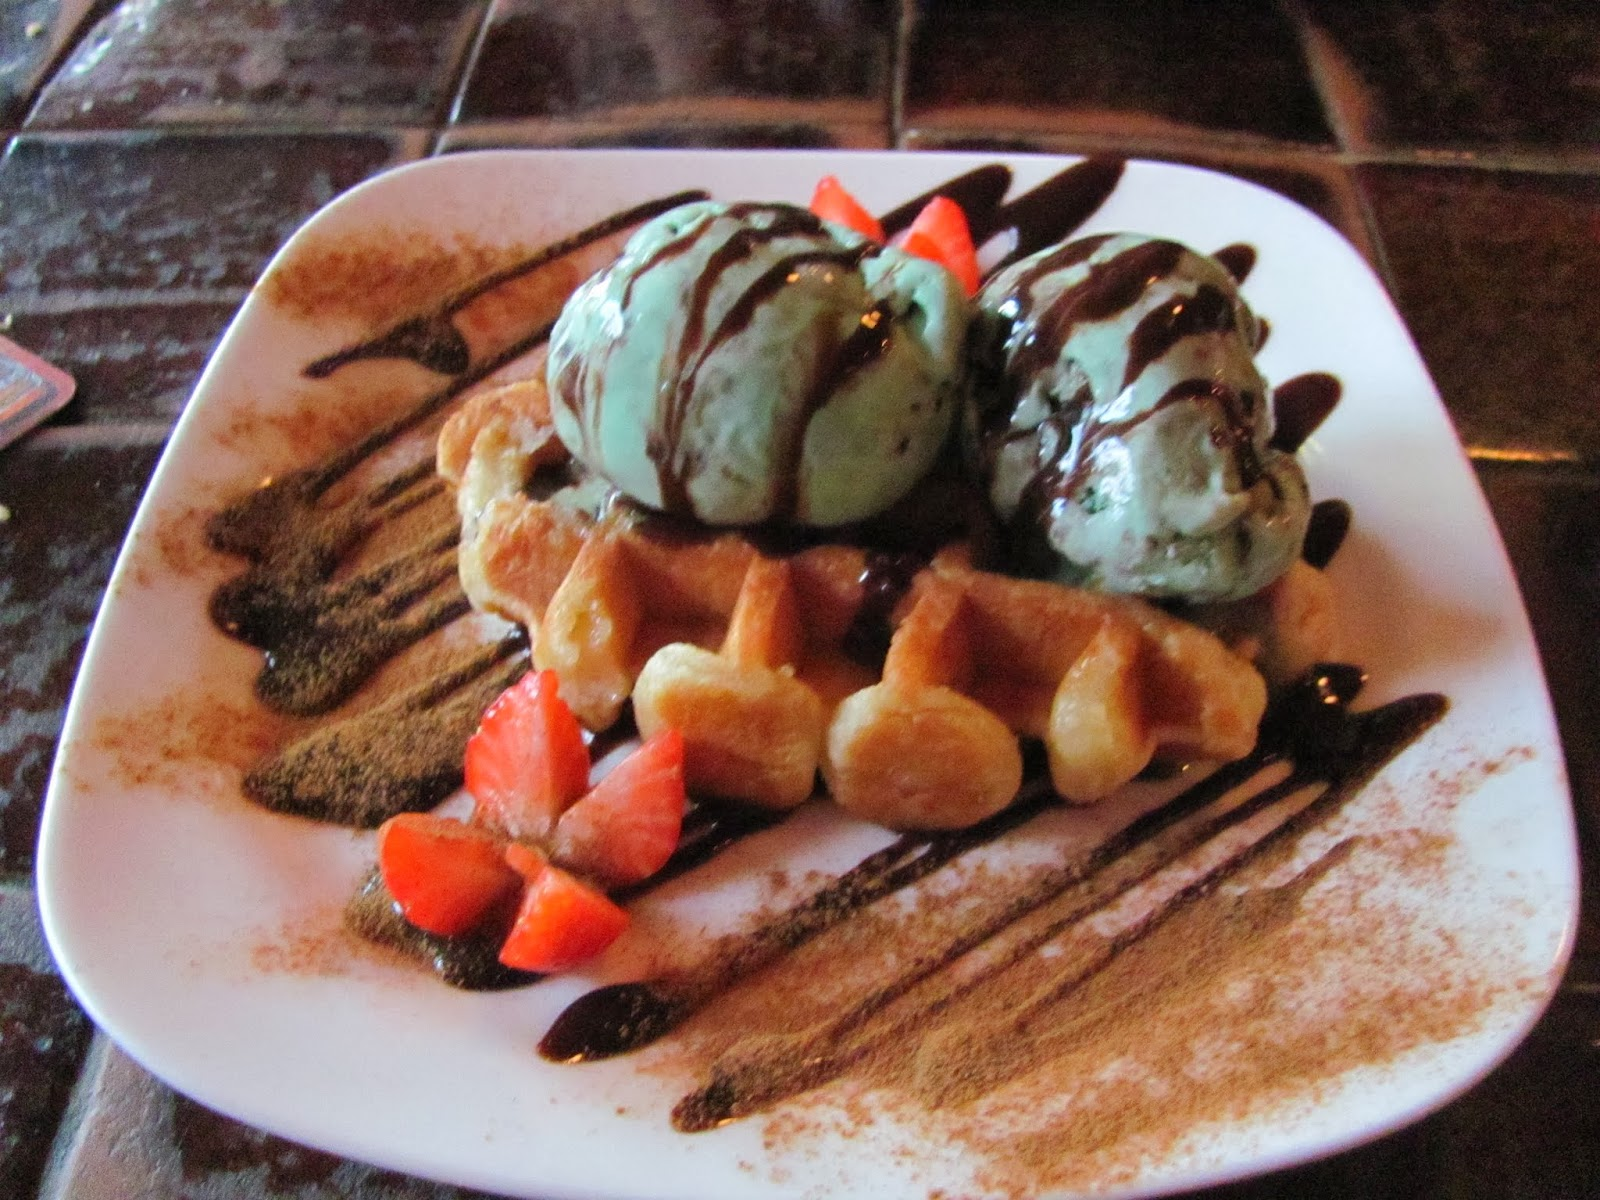 Ice Cream and Waffles from The Porterhouse Temple Bar